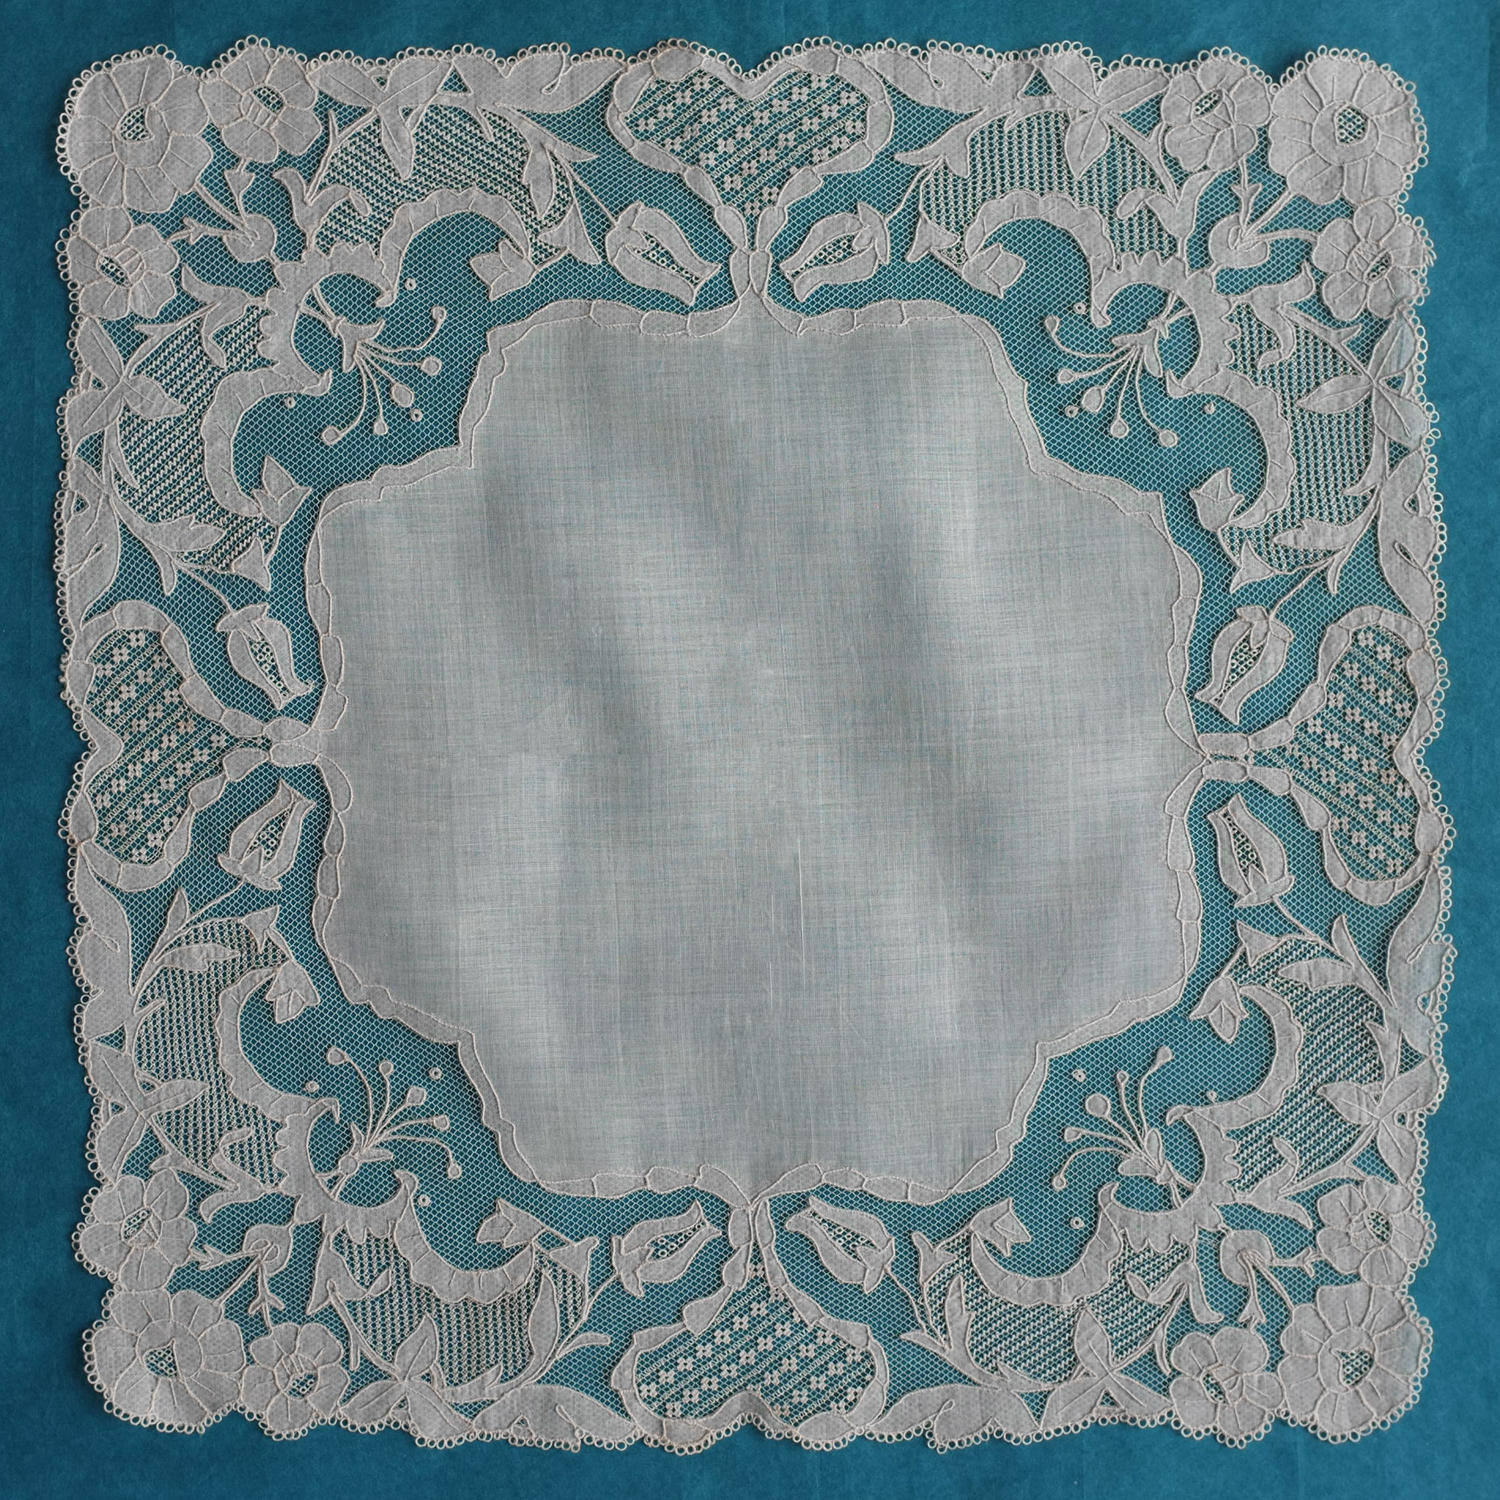 Carrickmacross Art Nouveau Lace Handkerchief